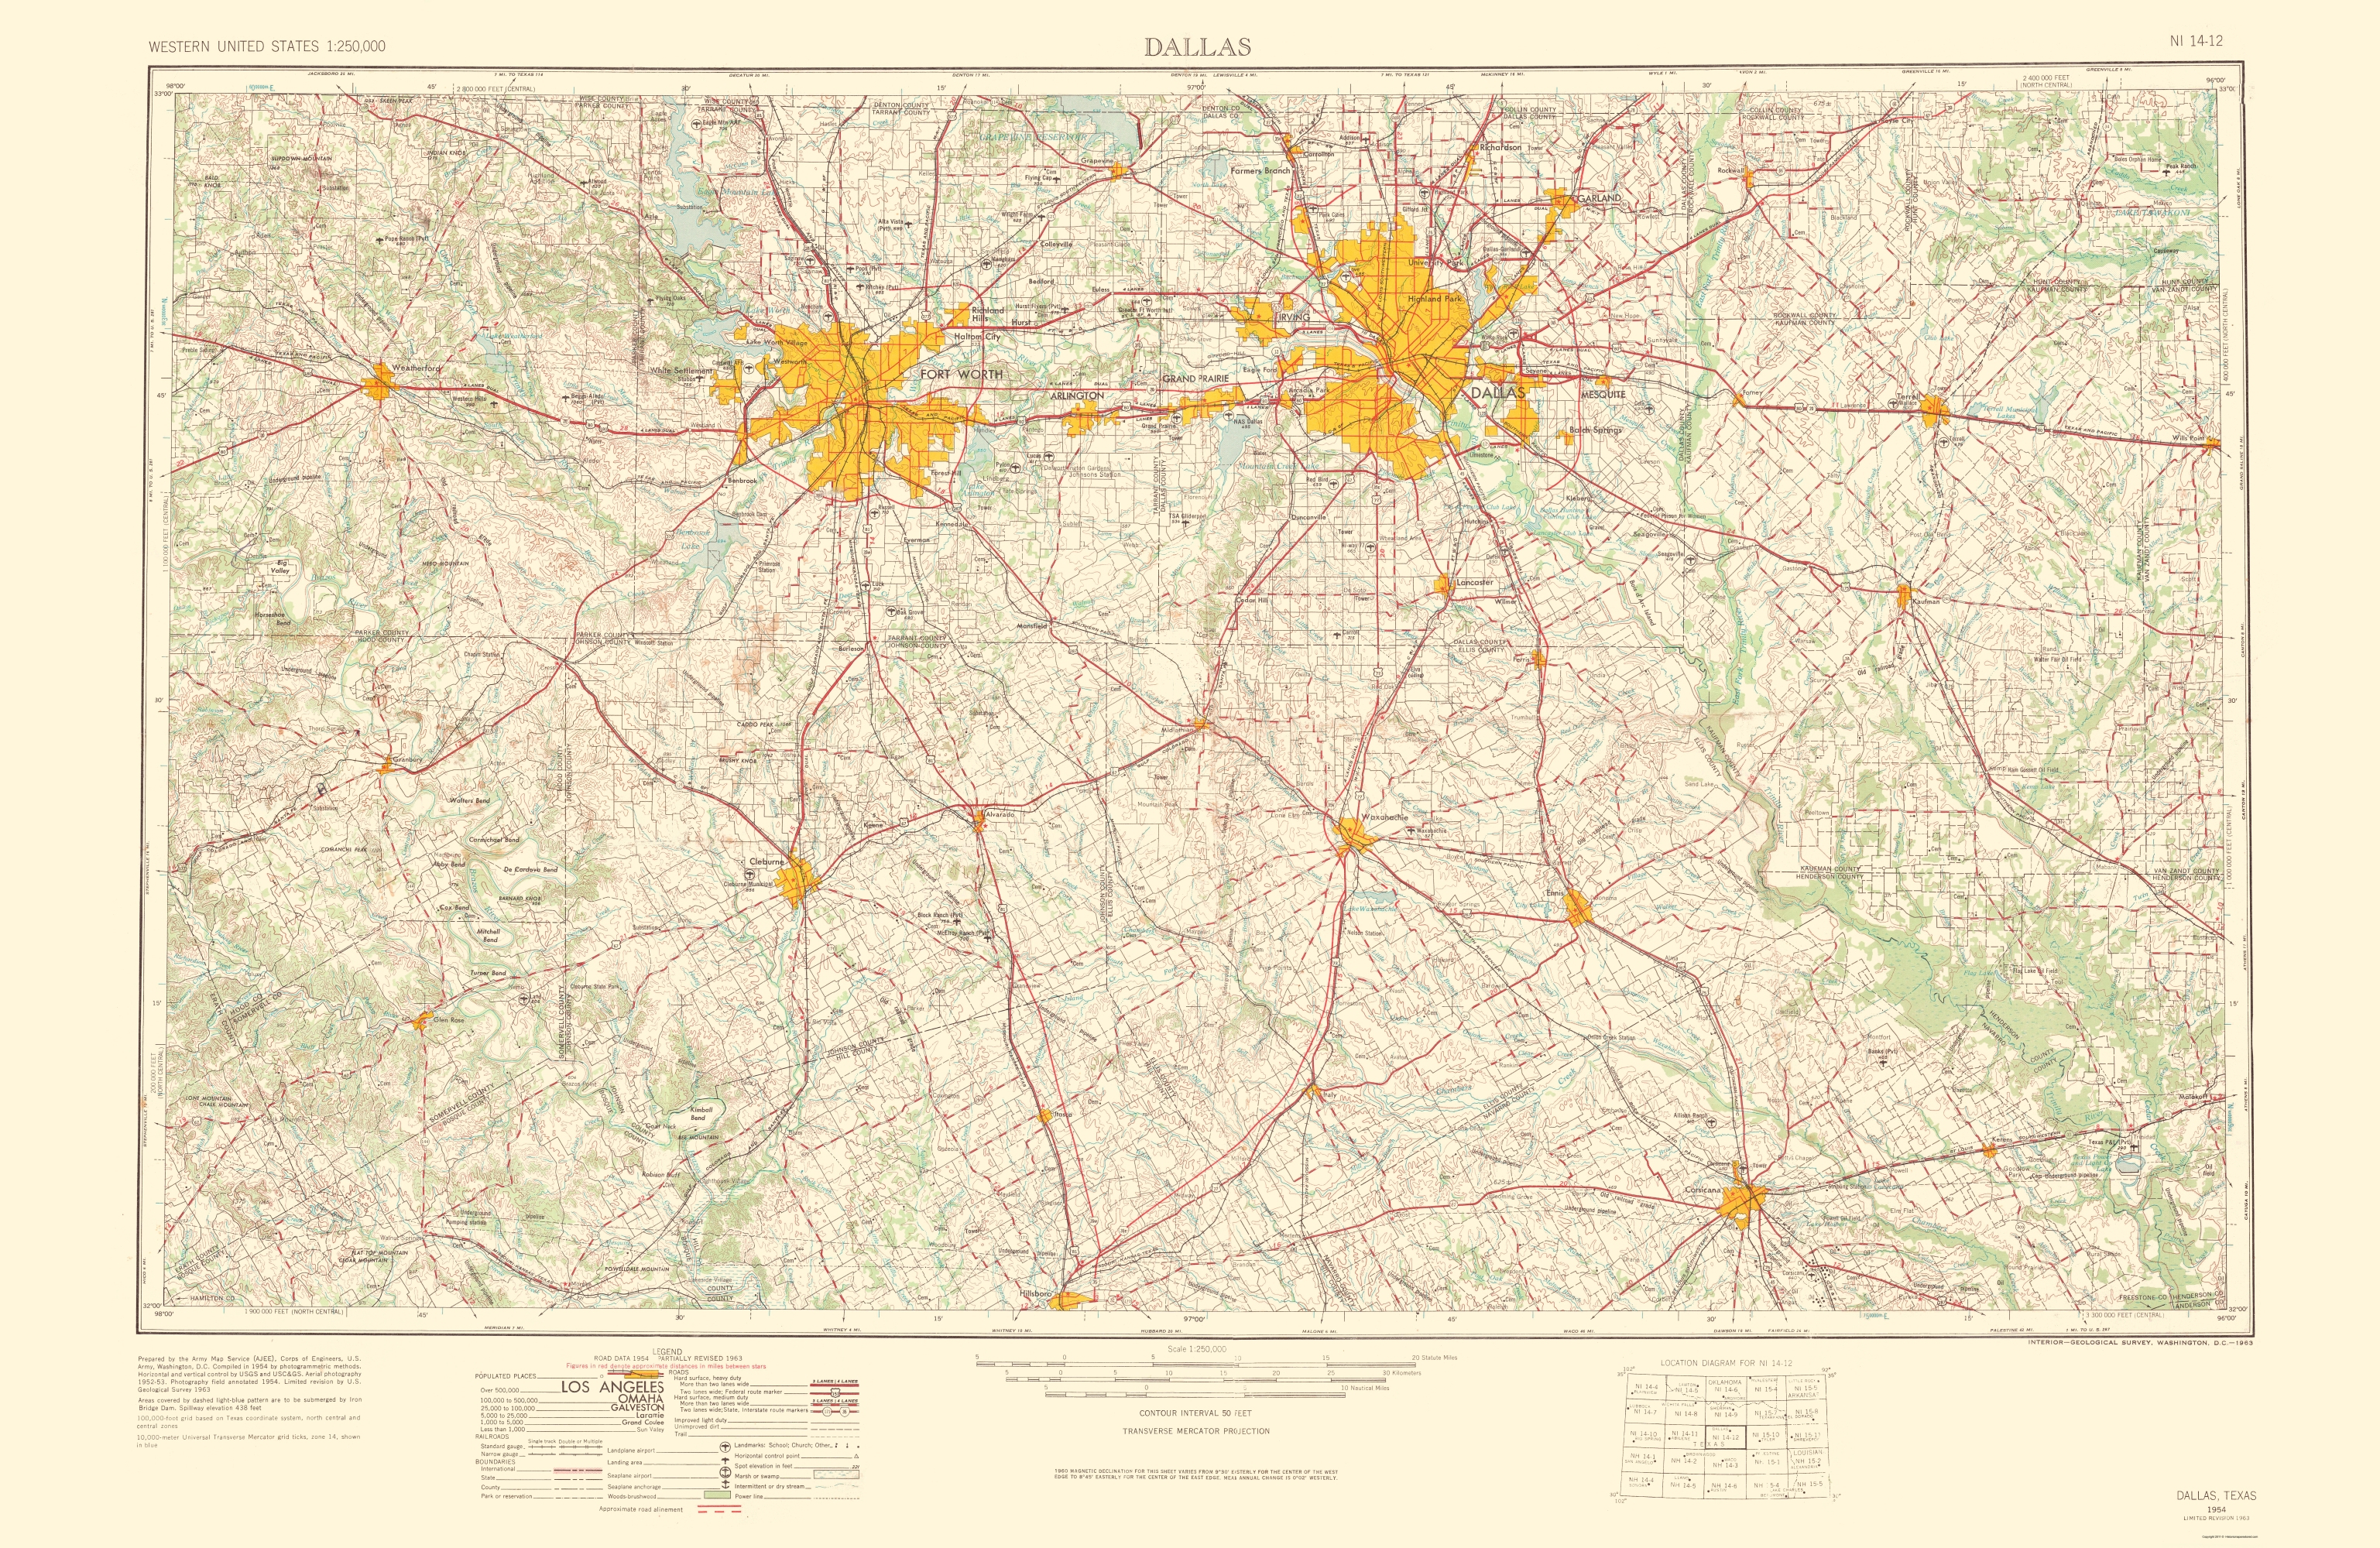 Old Topographical Map - Dallas Texas 1963 - Dallas Map Of Texas